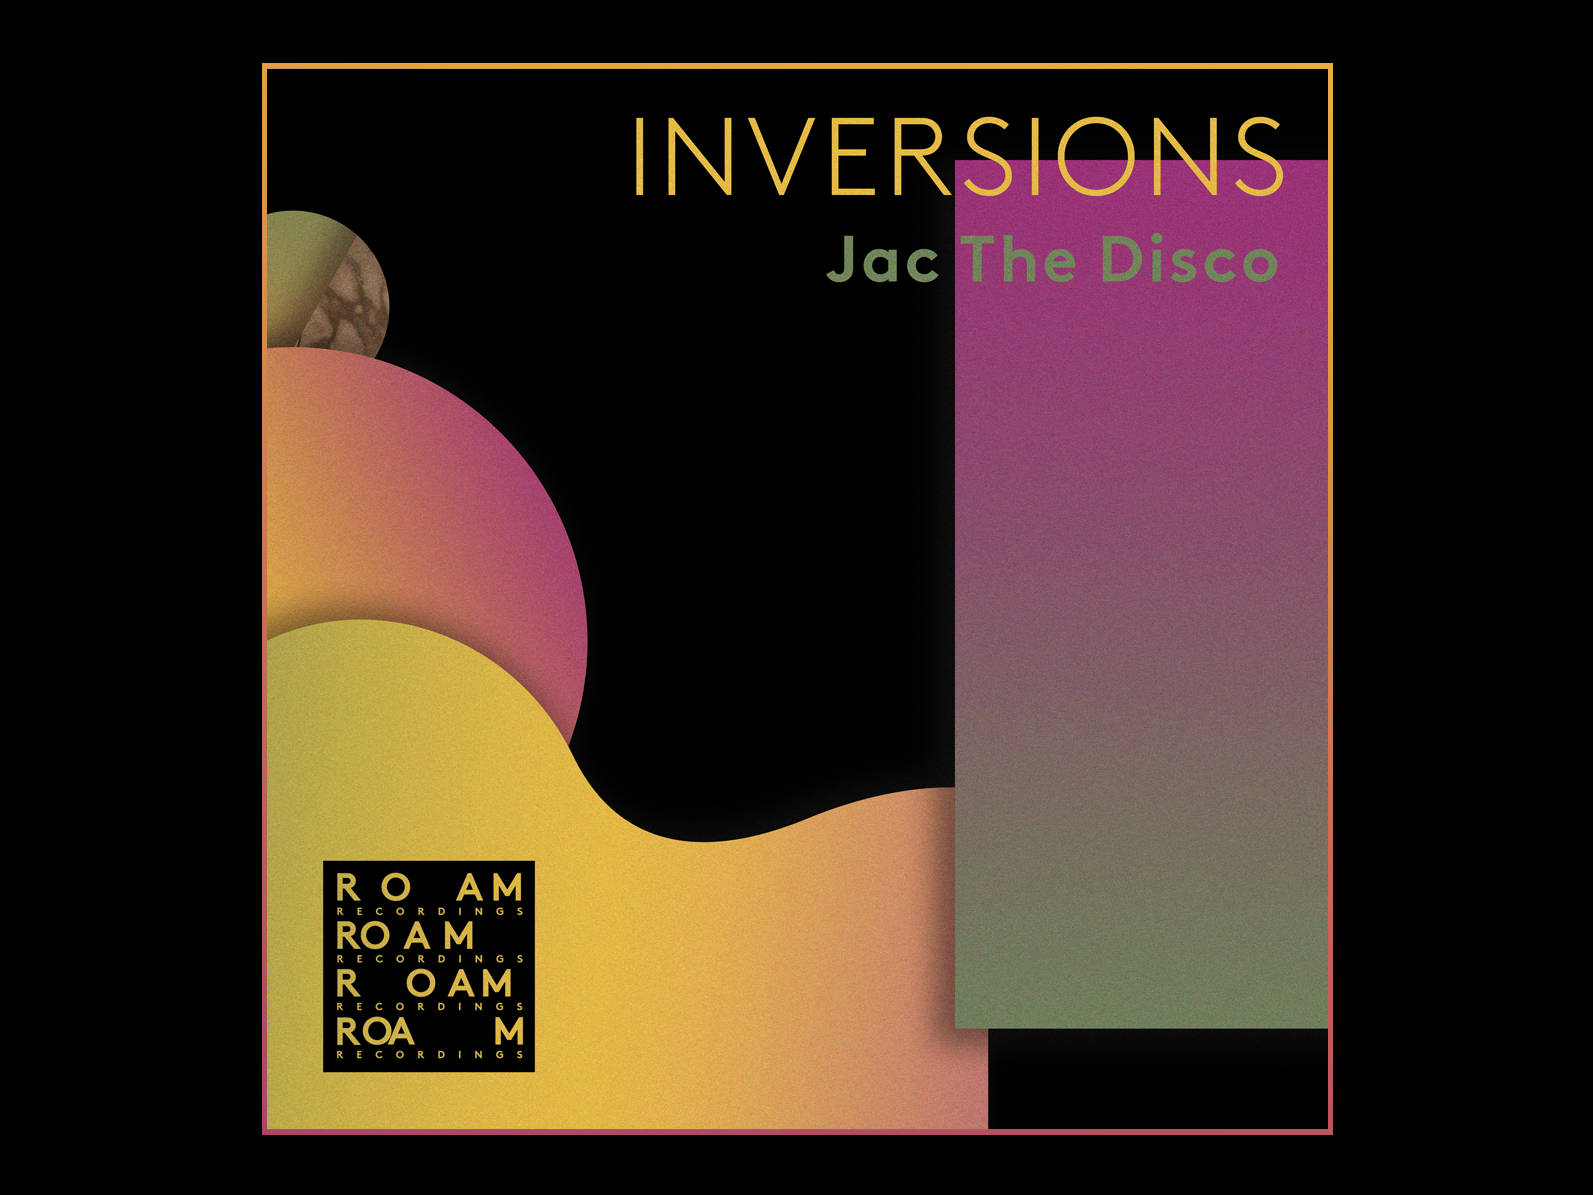 Inversions - Jack The Disco danielroozendaal artist roam roamrecordings gradients shapes artwork cover design cover art art abstract techno house disco ep cover music jackthedisco inversions